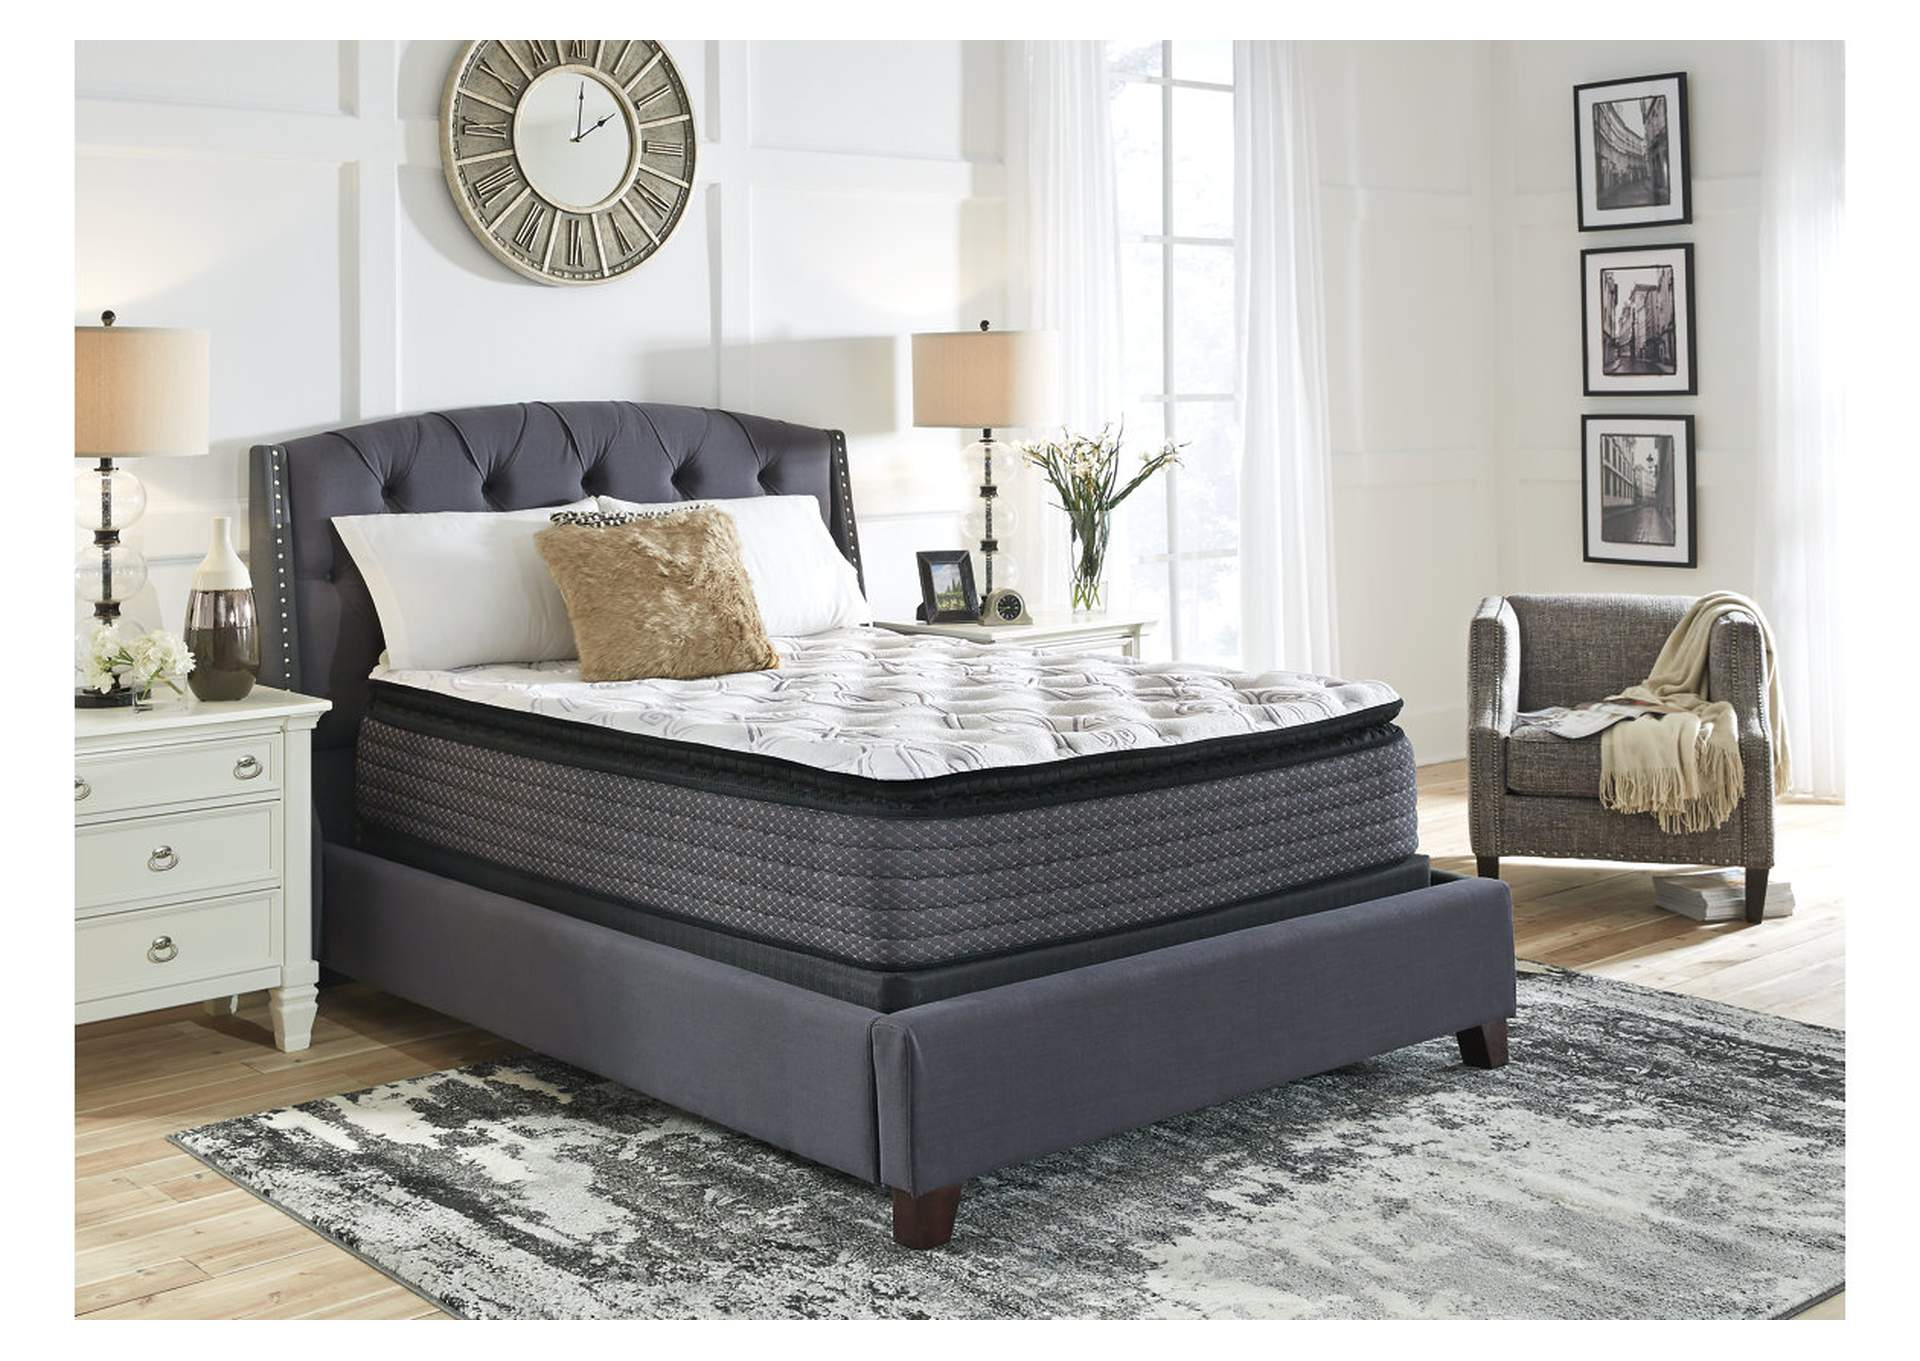 Limited Edition Pillowtop Queen Mattress w/Foundation,Sierra Sleep by Ashley